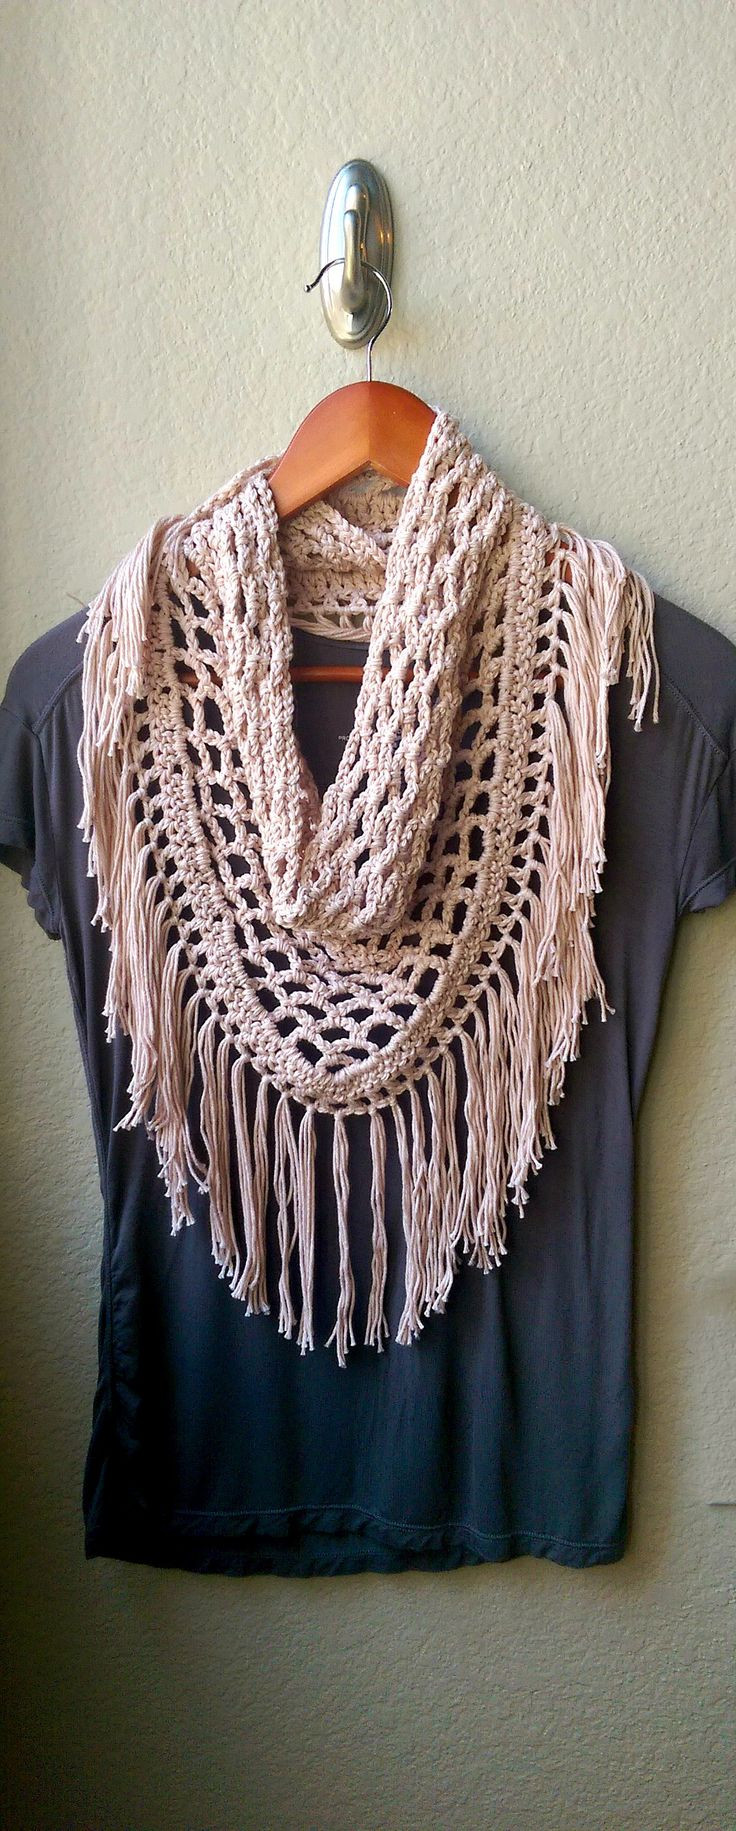 Crochet Neck Scarf Best Of Crochet Fringe Cowl Neck Scarf Pattern Of Great 50 Ideas Crochet Neck Scarf